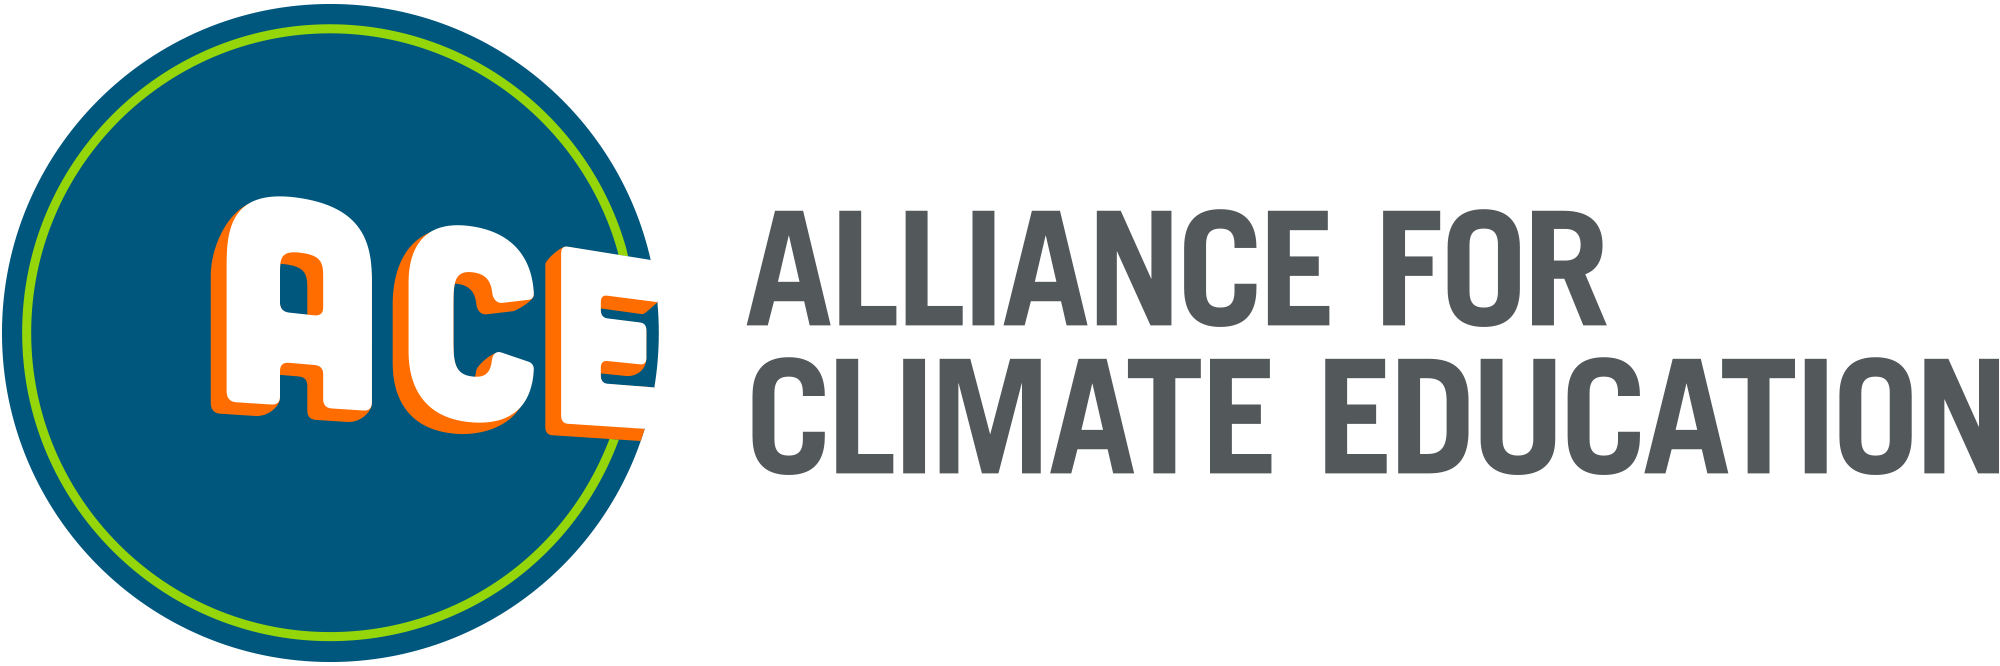 Alliance for Climate Education Logo.png